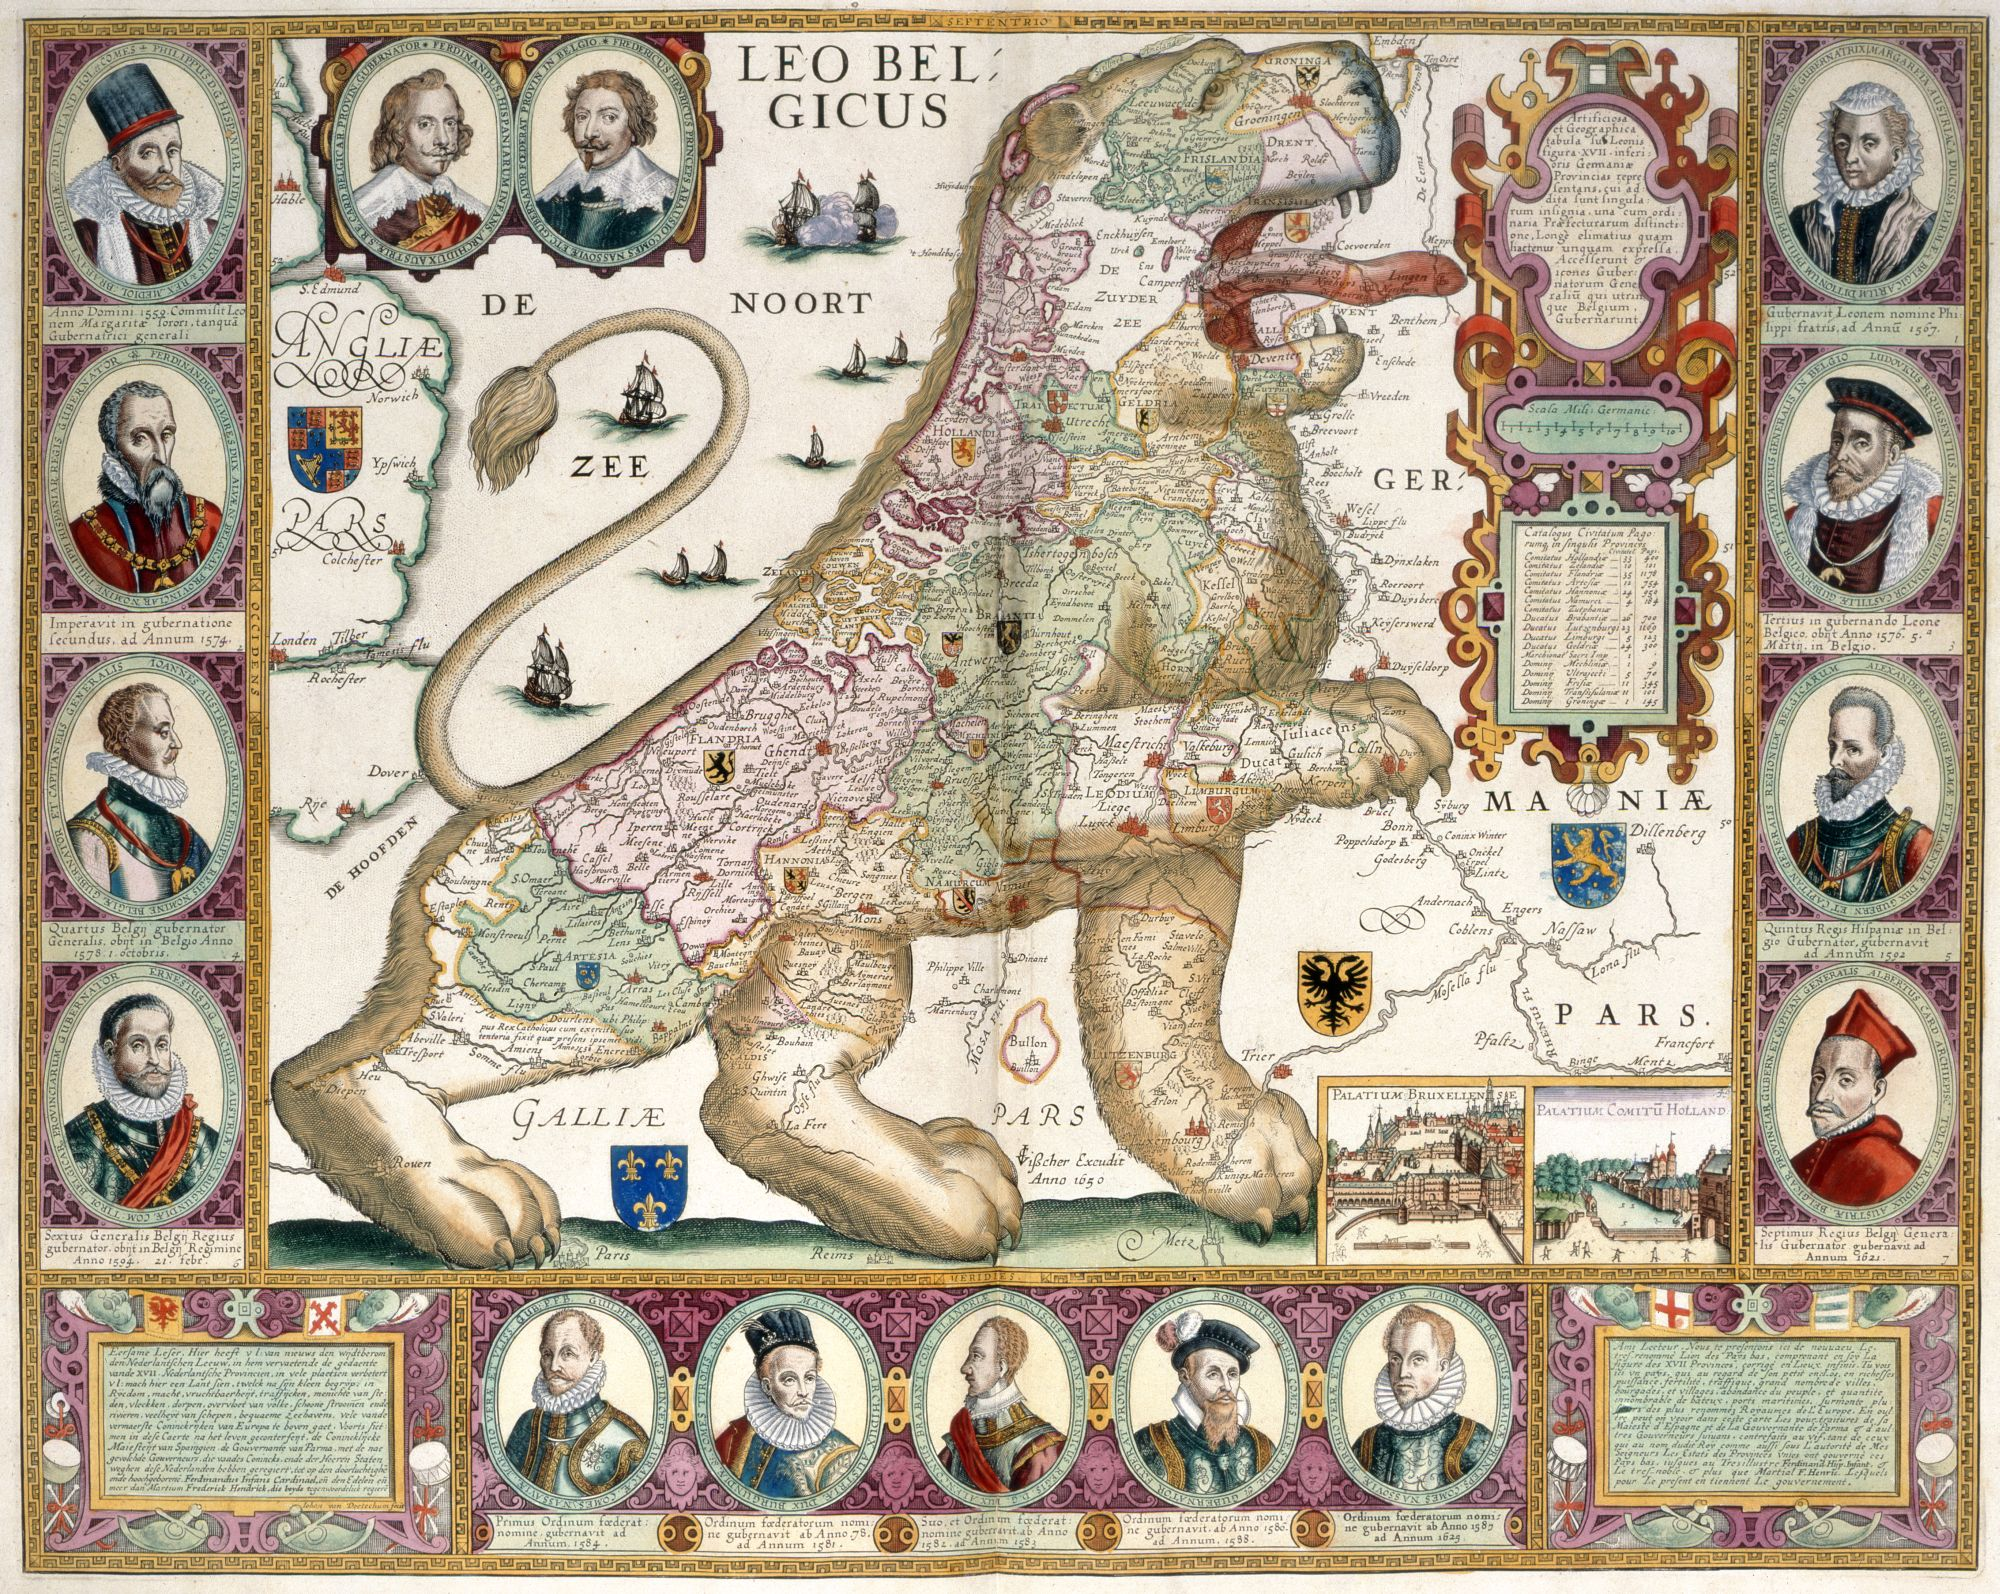 The Lion of the Low Countries, by Johannes van Deutecum Jr.